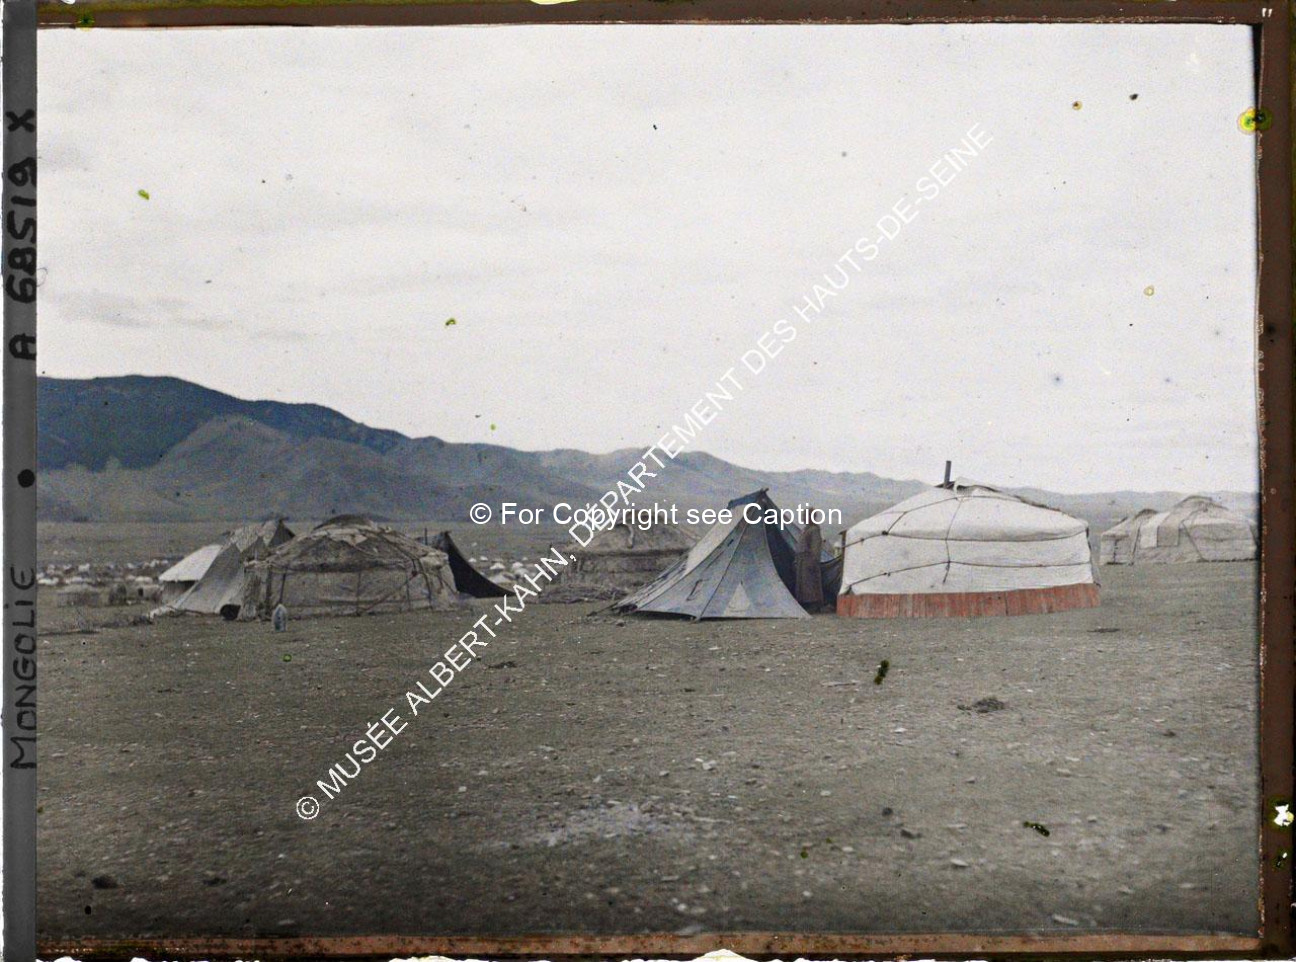 Yurts and tents near Jarankhashar stupa. Musée Albert-Kahn. A68519. Photo taken by Stéphane Passet,